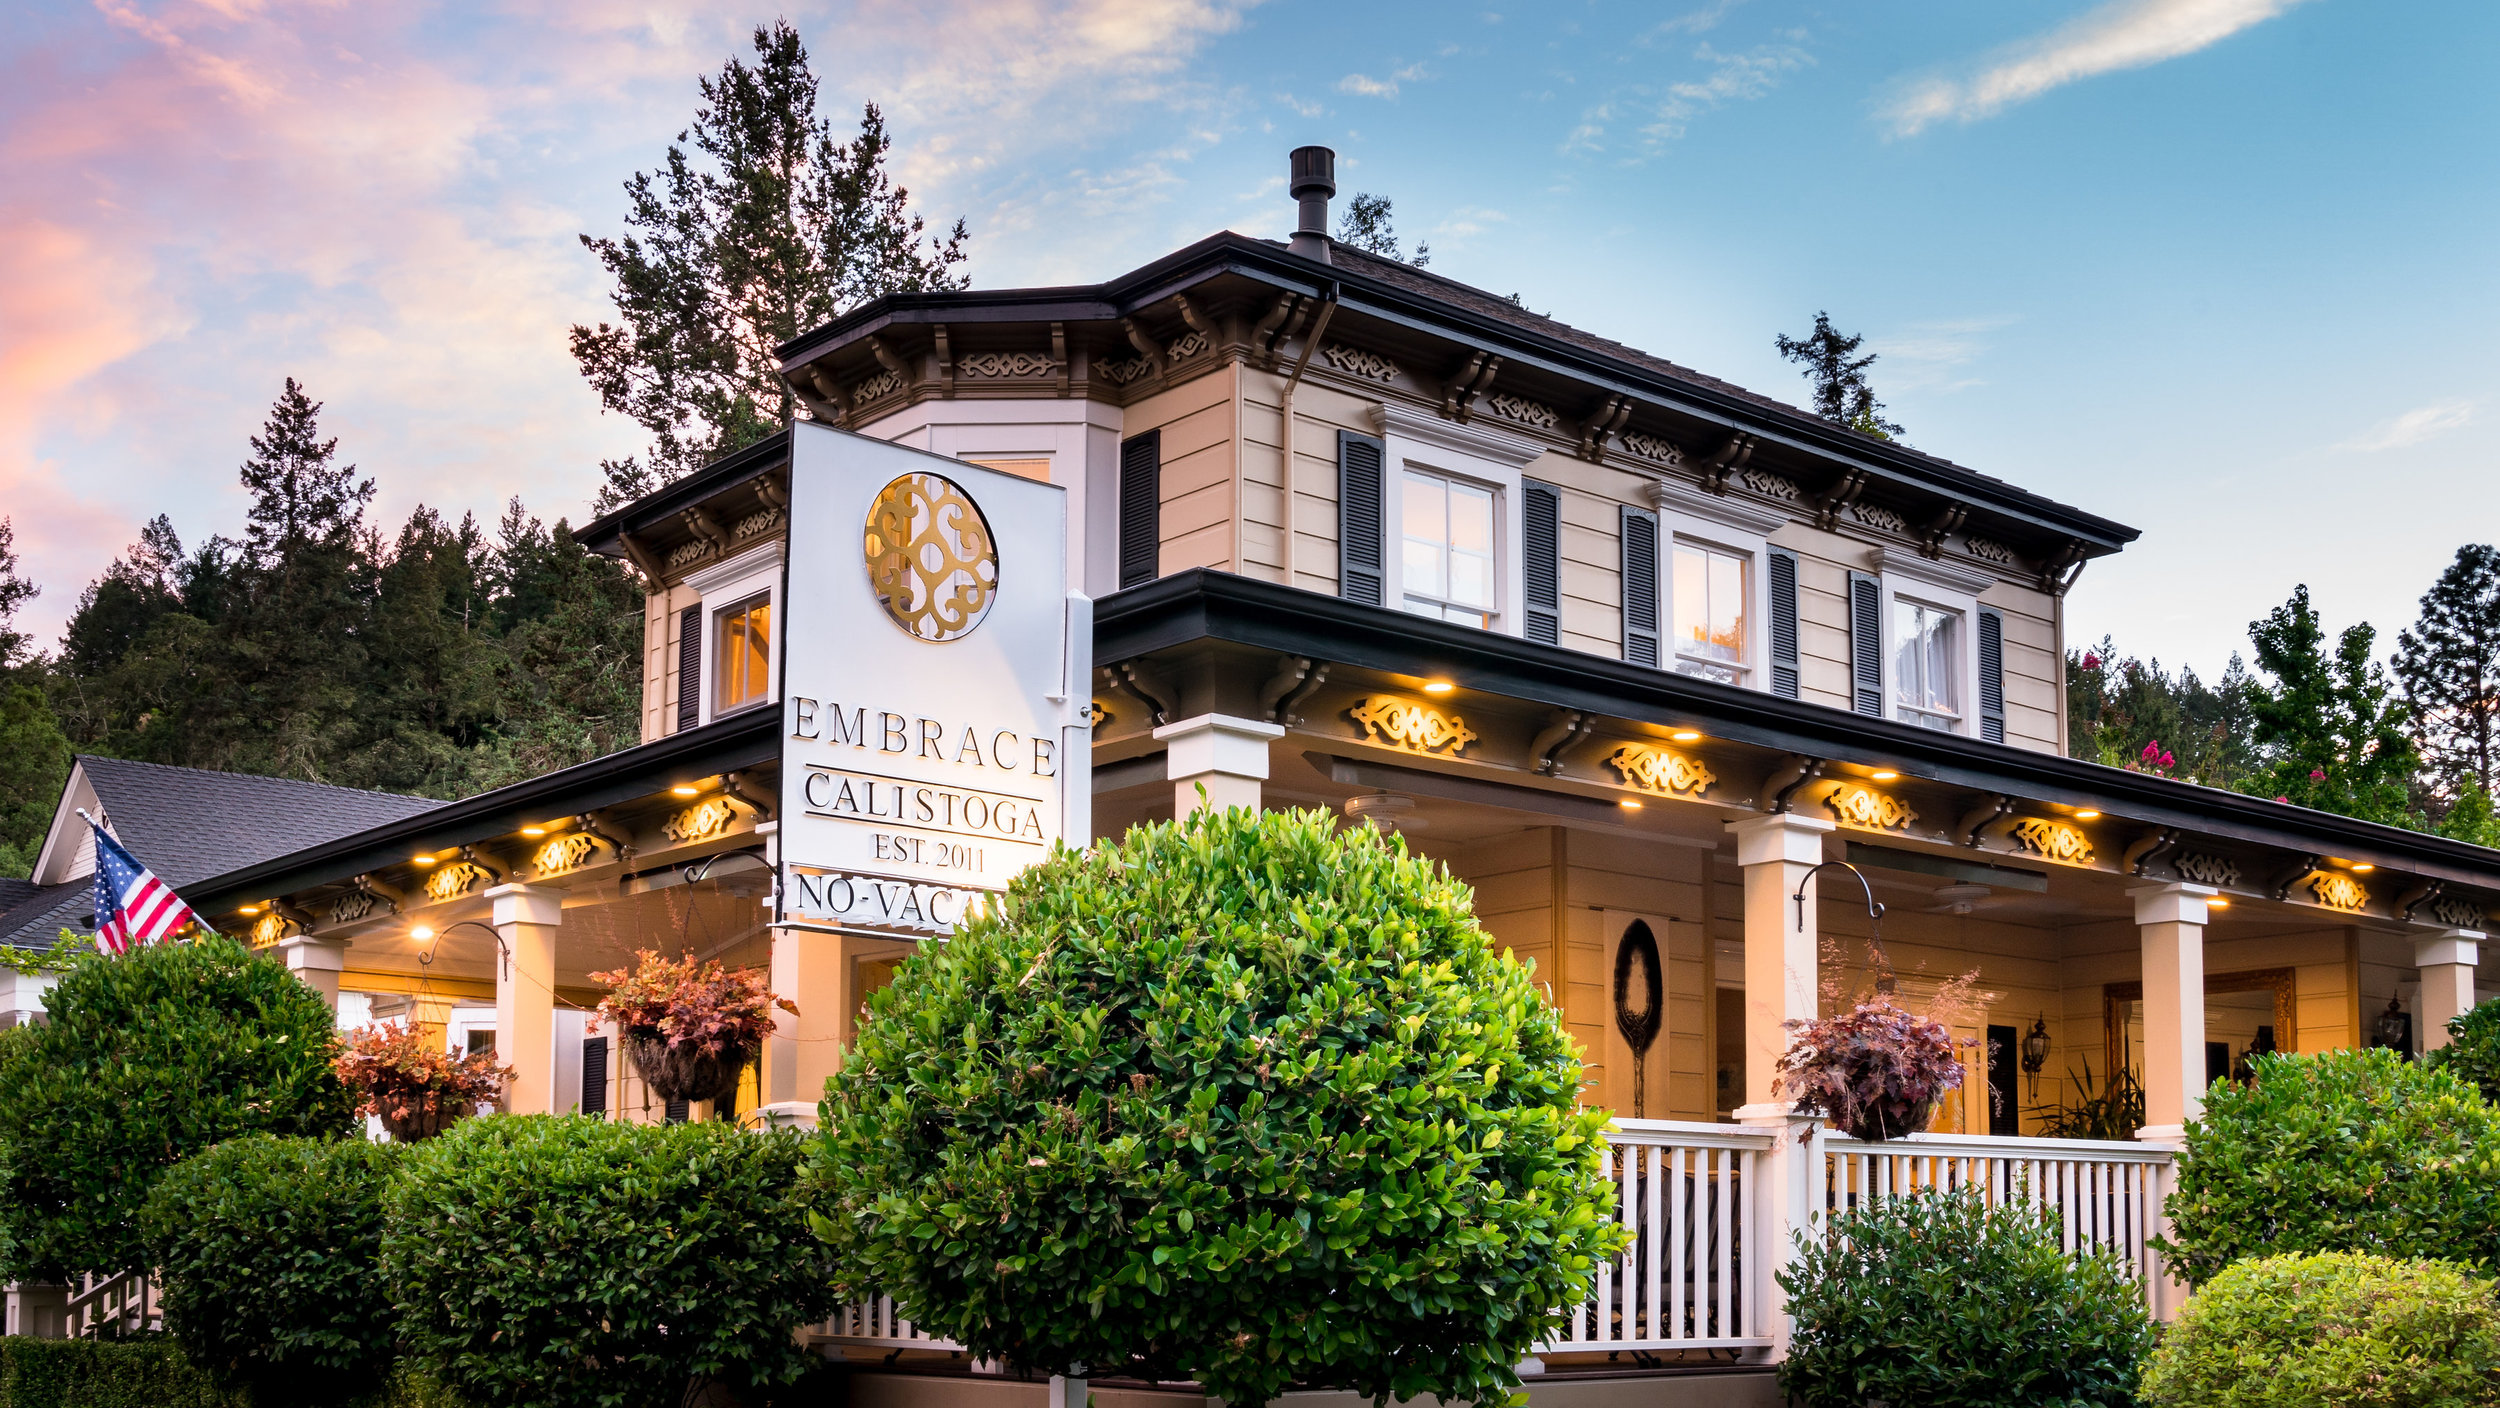 Front view of Embrace Calistoga